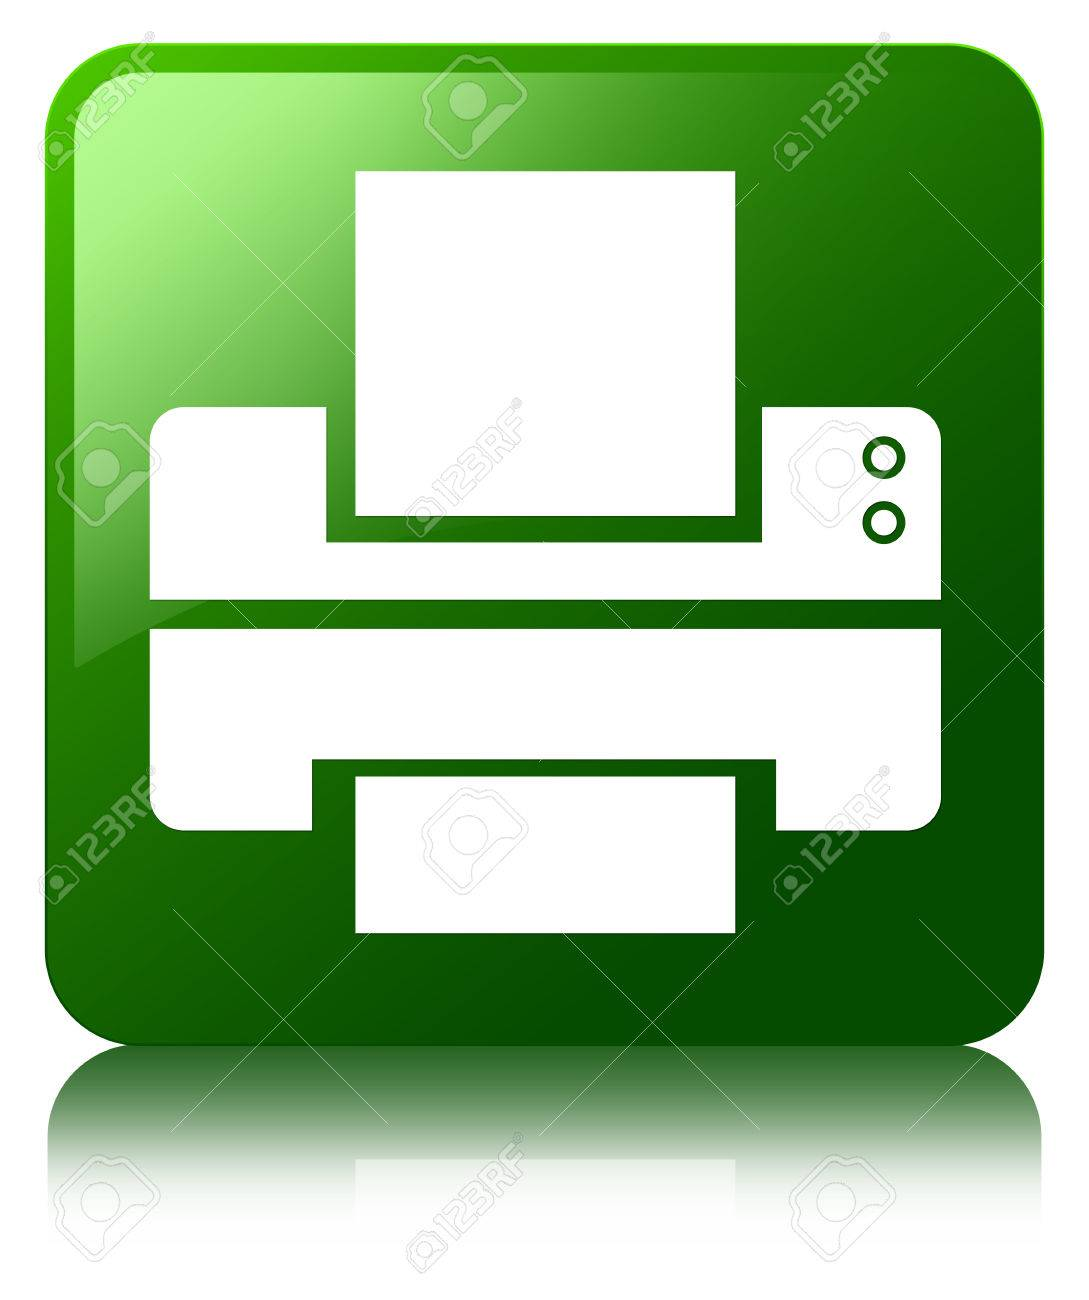 277 Multifunction Printer Stock Vector Illustration And Royalty ...